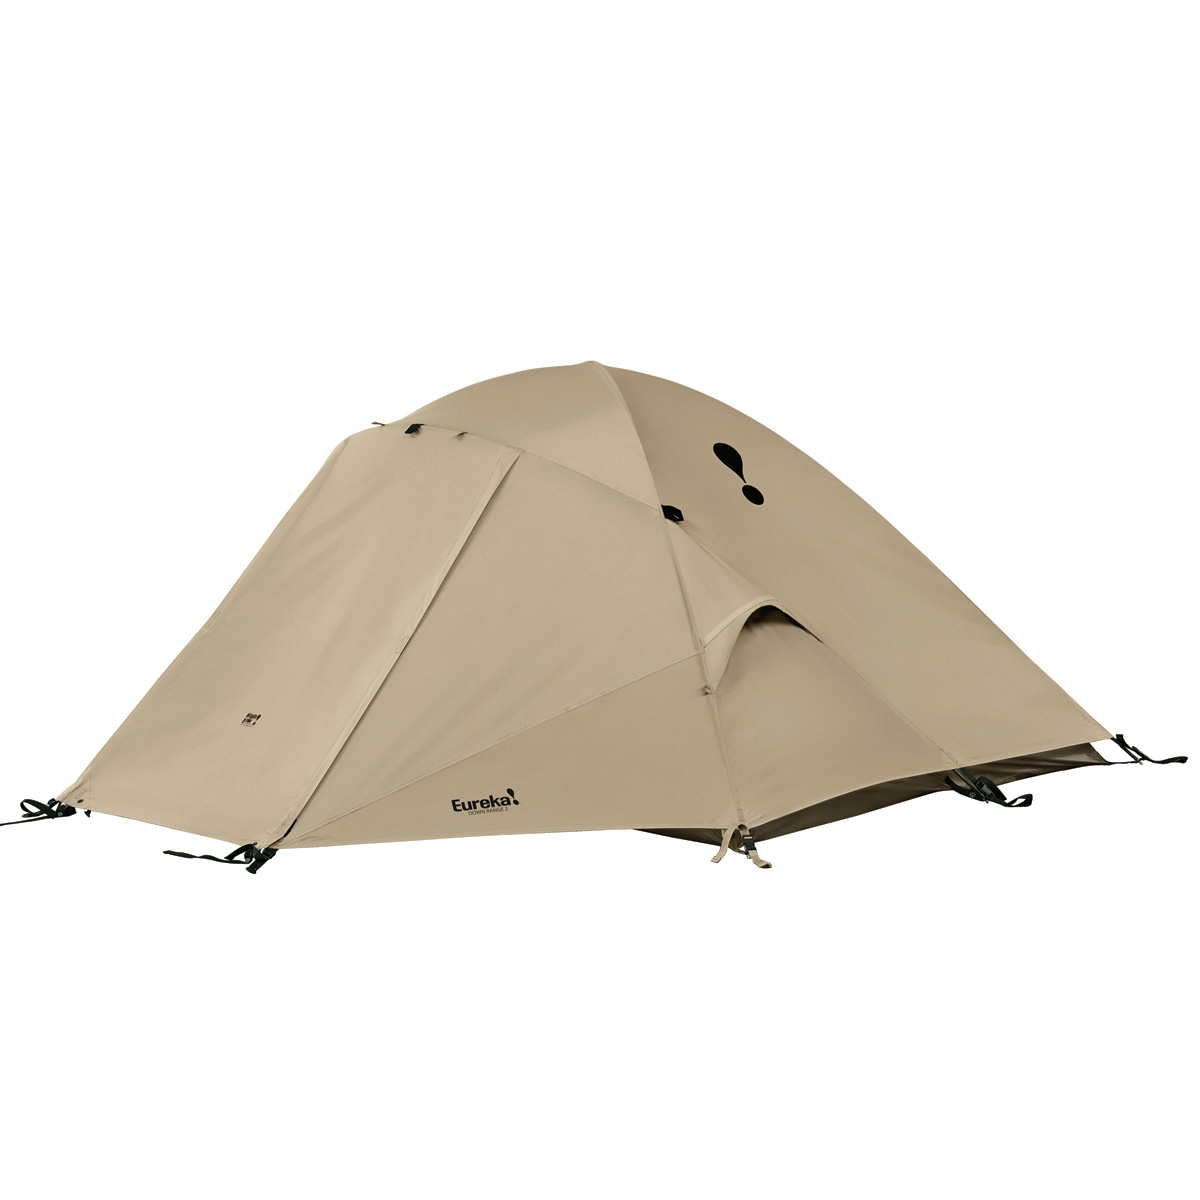 Show More  sc 1 st  Tents | Eureka! - Johnson Outdoors & Down Range 2 Person Tent | Eureka!